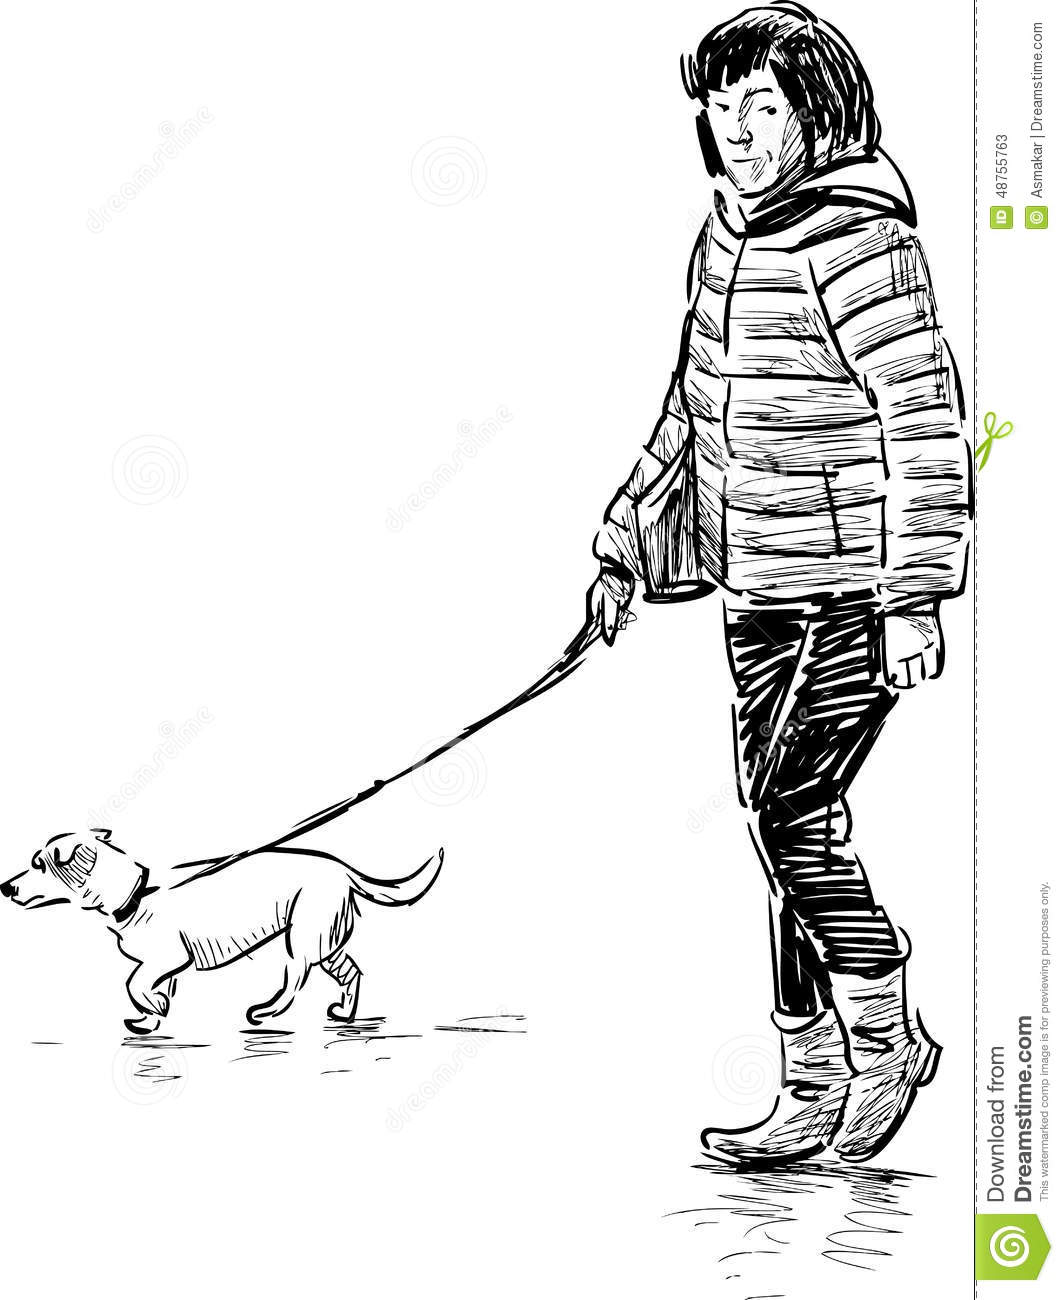 Woman with a dog on a walk stock vector. Illustration of domestic ... fc8b743efe